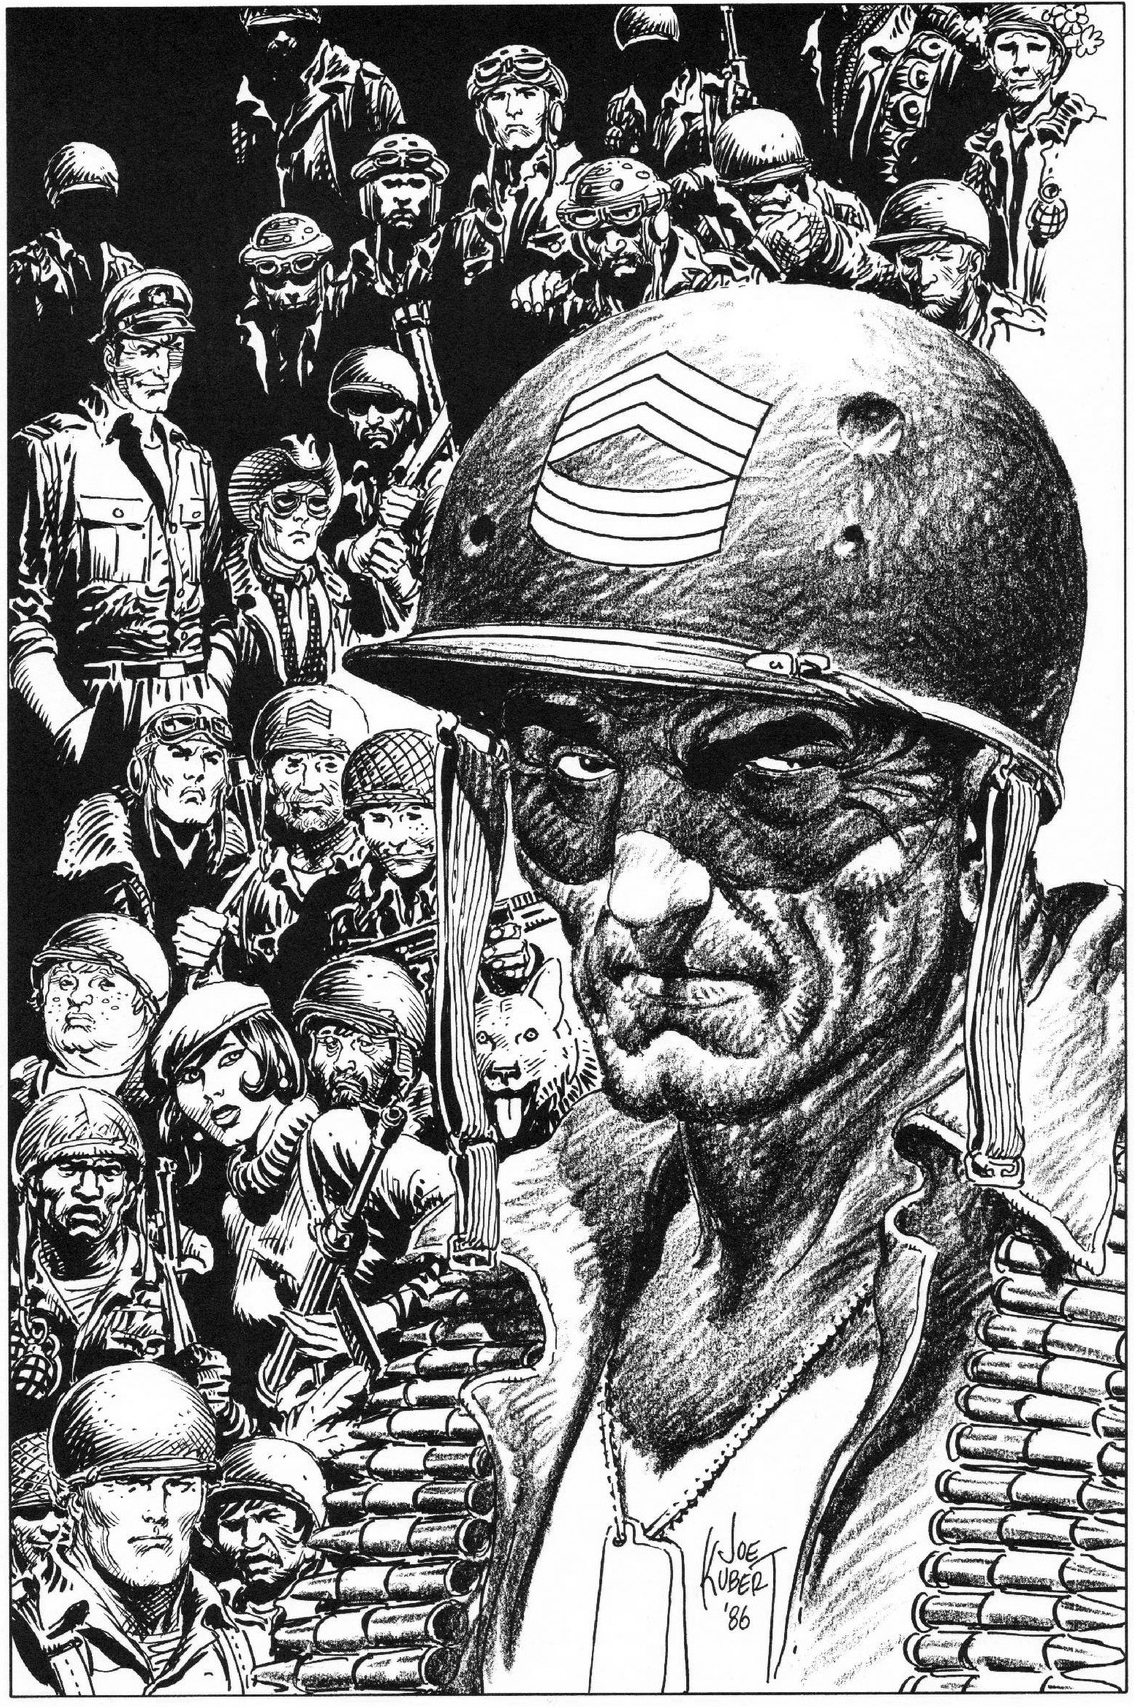 Sgt. Rock & Company by Joe Kubert.